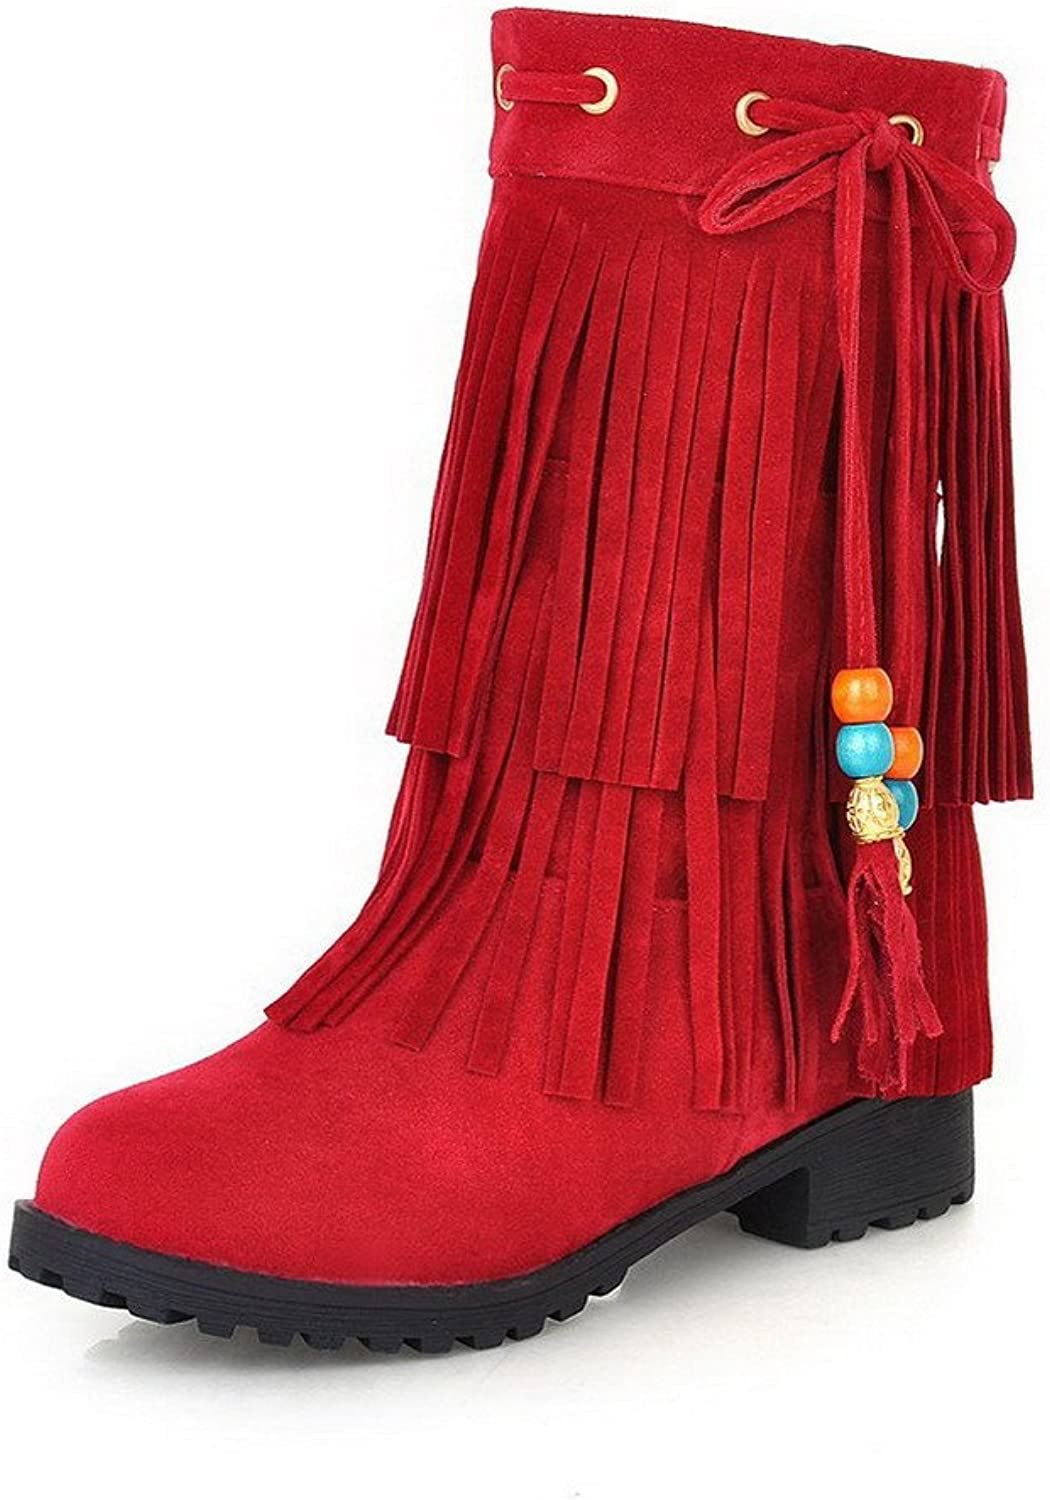 WeenFashion Women's Frosted Pull-On Round Closed Toe Low-Heels Low-Top Boots